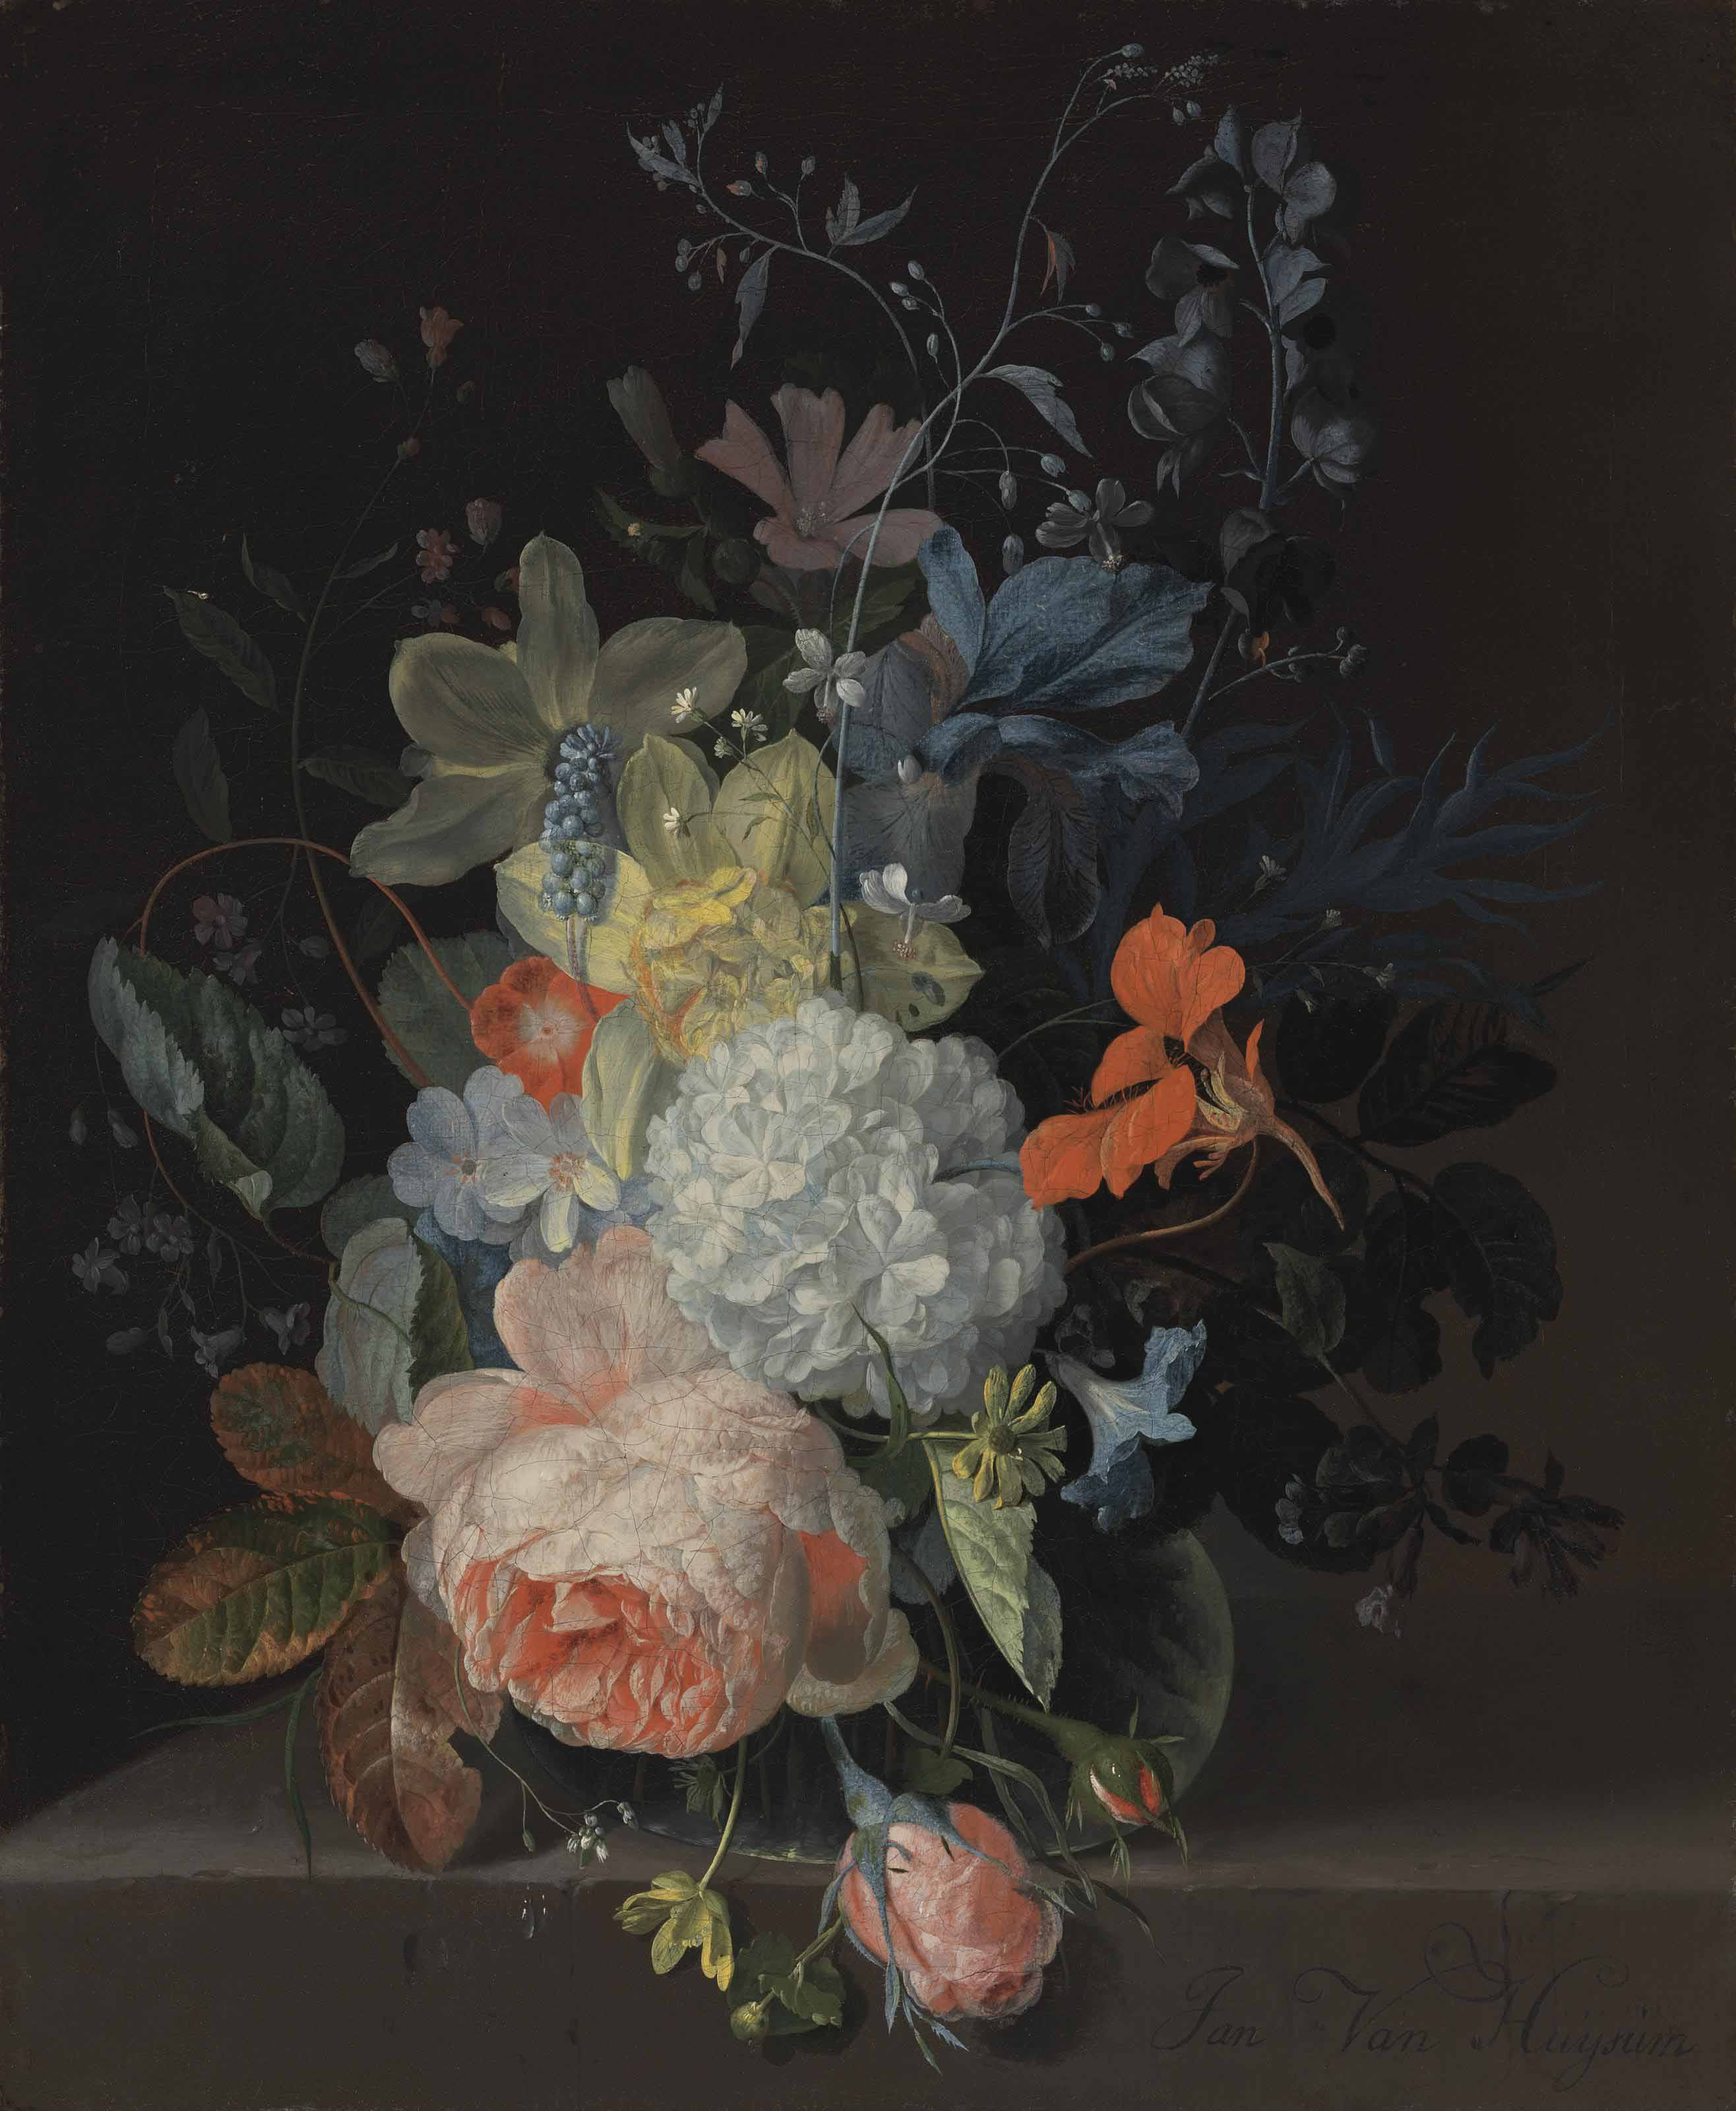 A rose, a snowball, daffodils, irises and other flowers in a glass vase, on a stone ledge